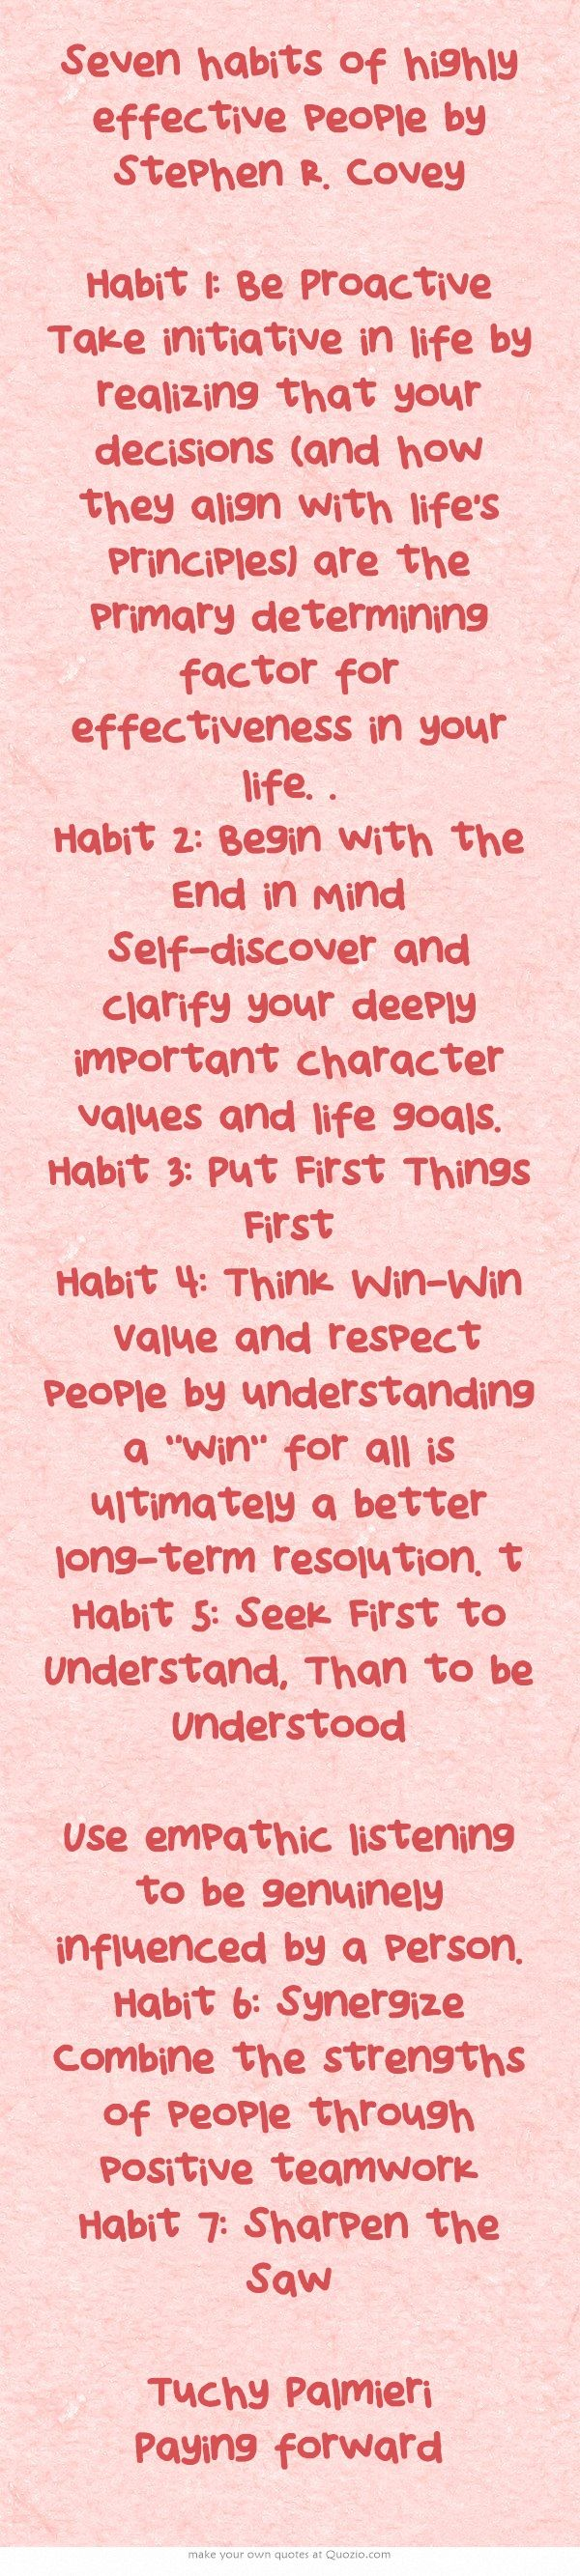 Seven habits of highly effective people by Stephen R. Covey Habit 1: Be Proactive Take initiative in life by realizing that your decisions (and how they align with life's principles) are the primary determining factor for effectiveness in your life. . Habit 2: Begin with the End in Mind Self-discover and clarify your deeply important character values and life goals. Habit 3: Put First Things First Habit 4: Think Win-Win Value and respect people by understanding a win...